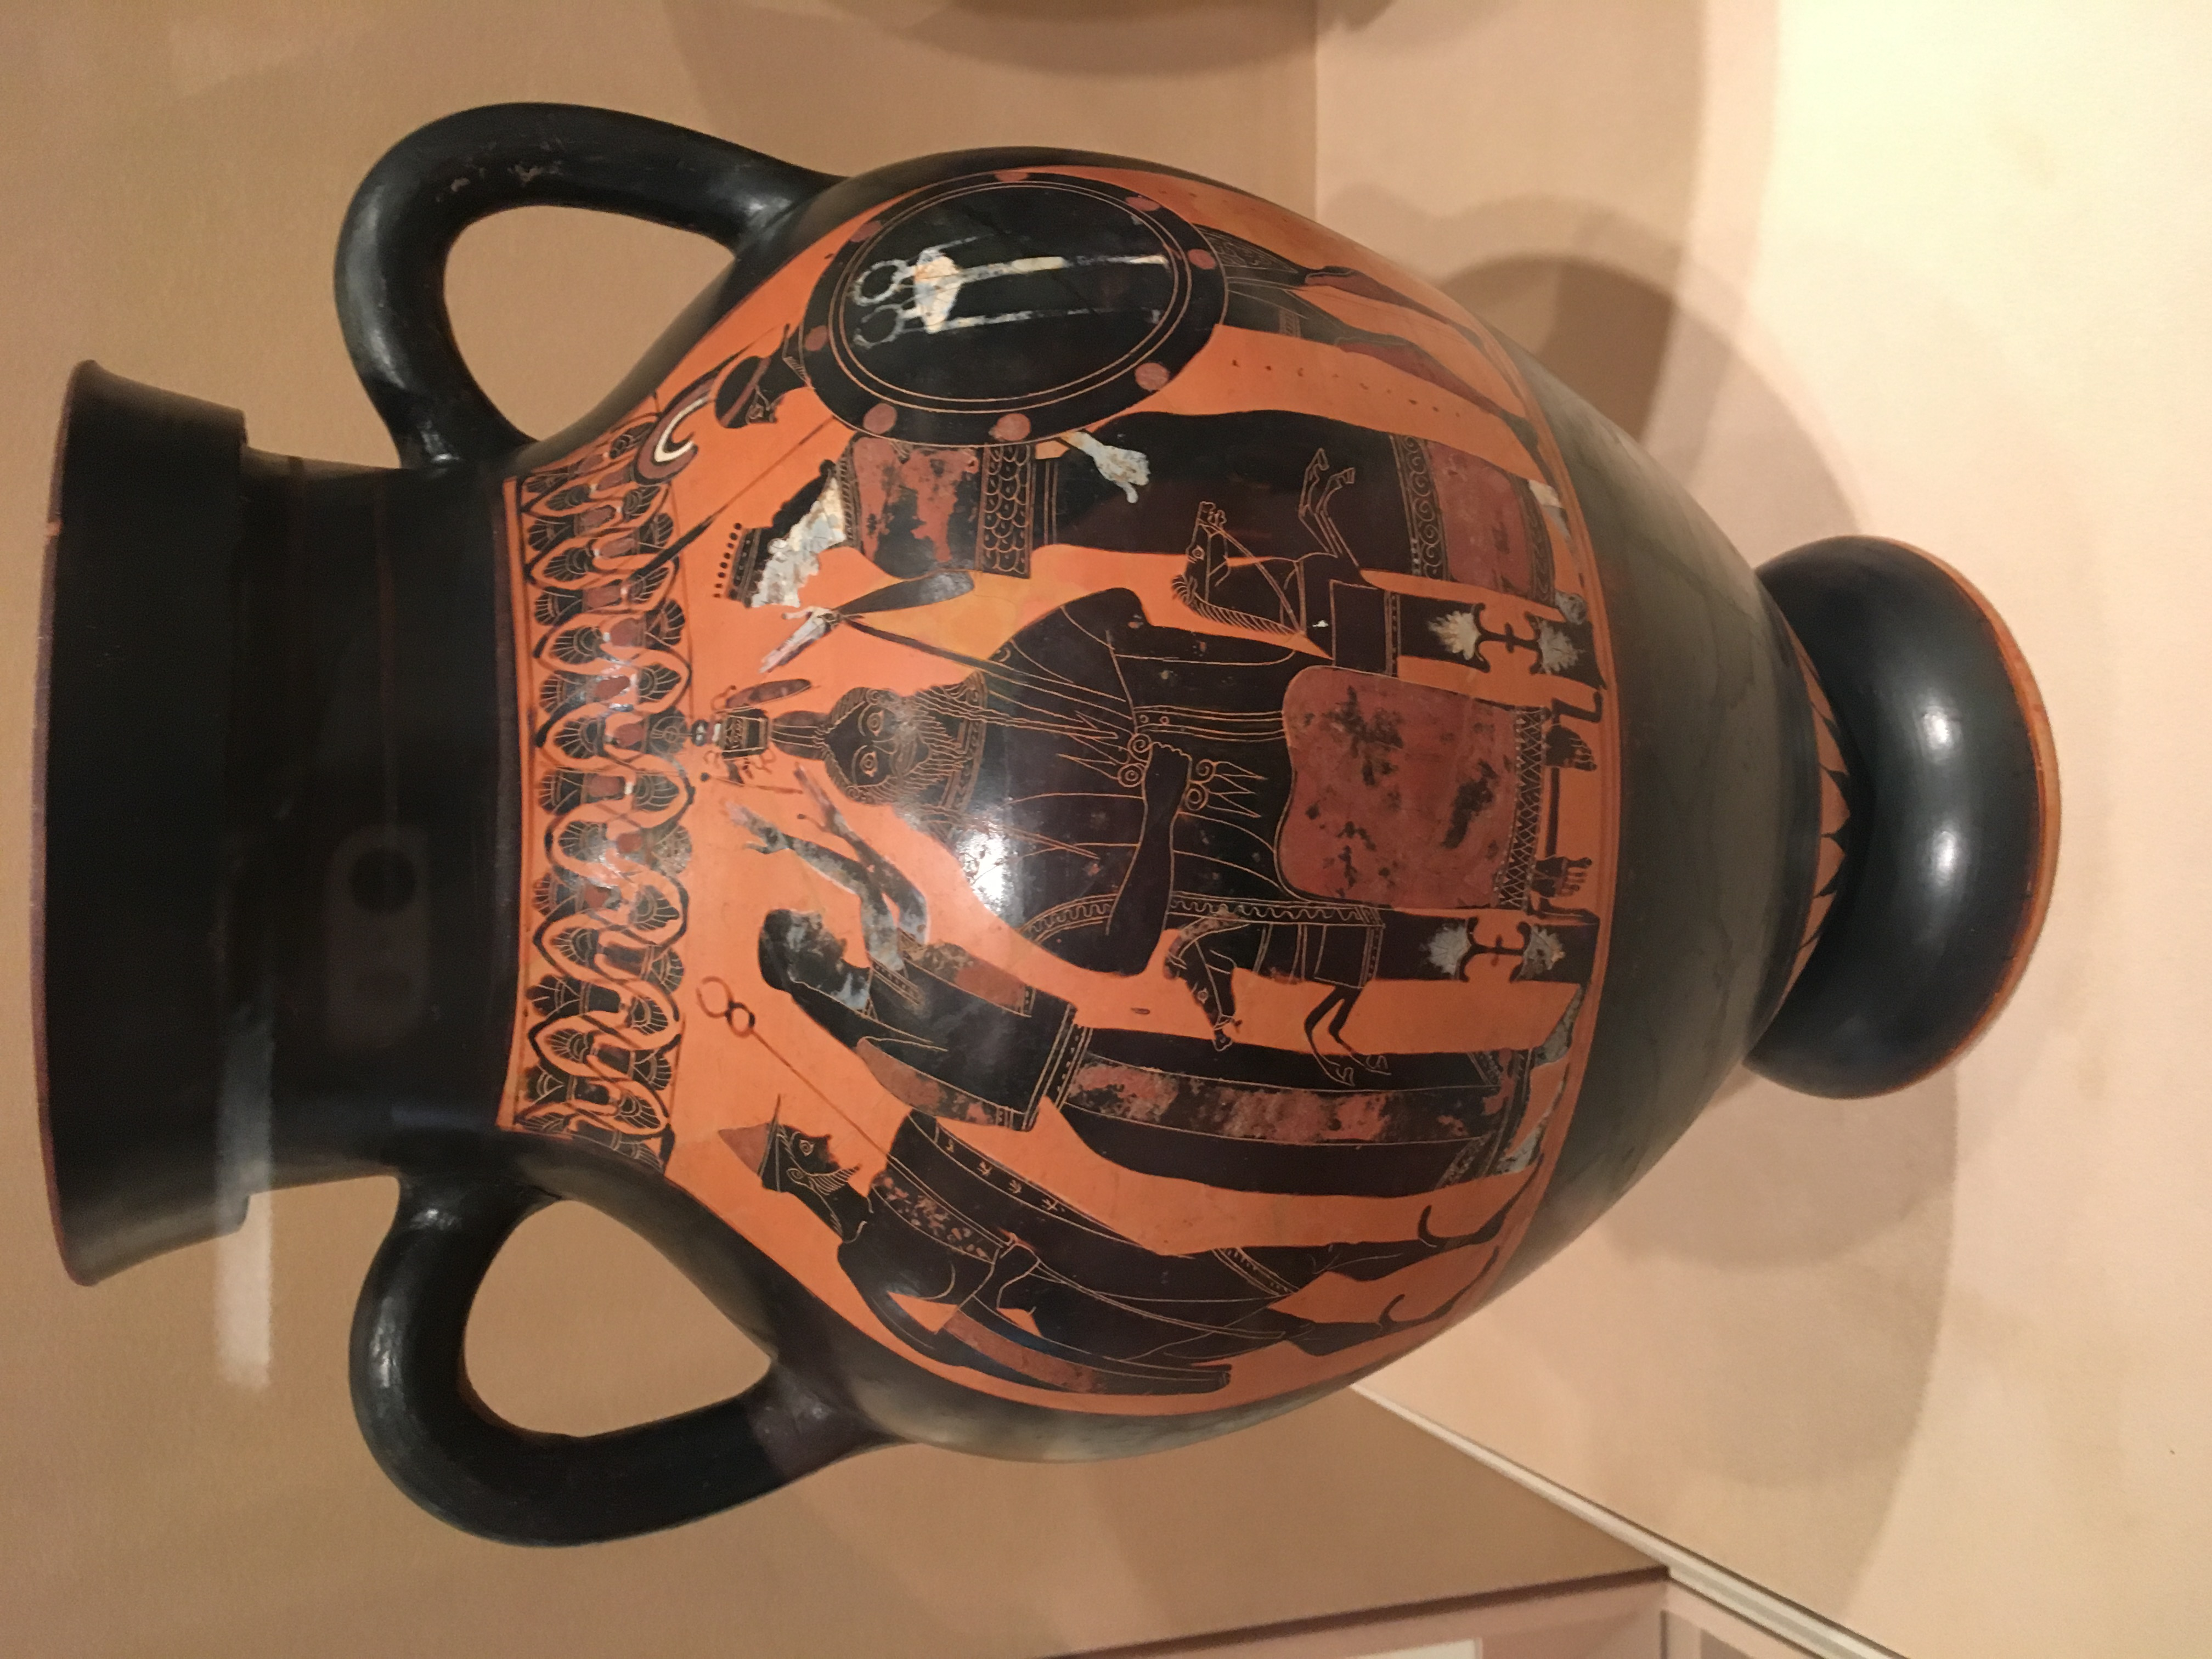 Vase painting and the semiotics of the ancient greeks buterbaugh it was created in 540 bc depicting the story of the goddess athenas birth in greek mythology zeus was foretold that his wife metis who was pregnant with reviewsmspy